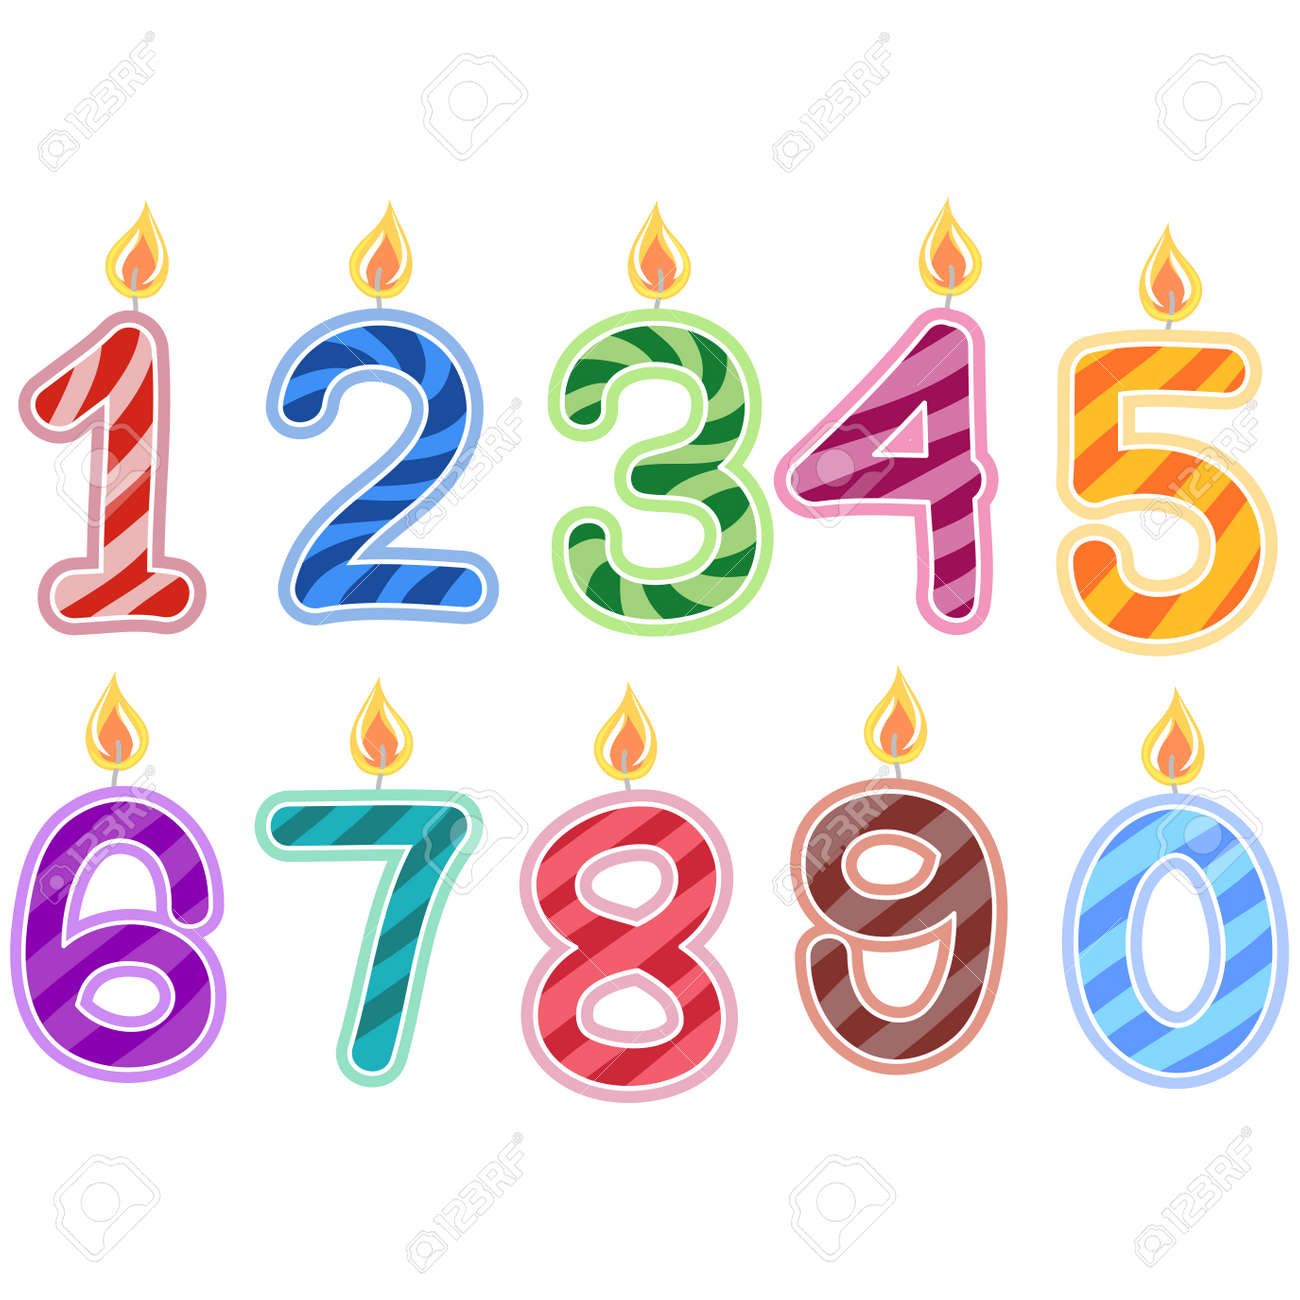 Vector Illustration Of Birthday Candles Numbers Royalty Free